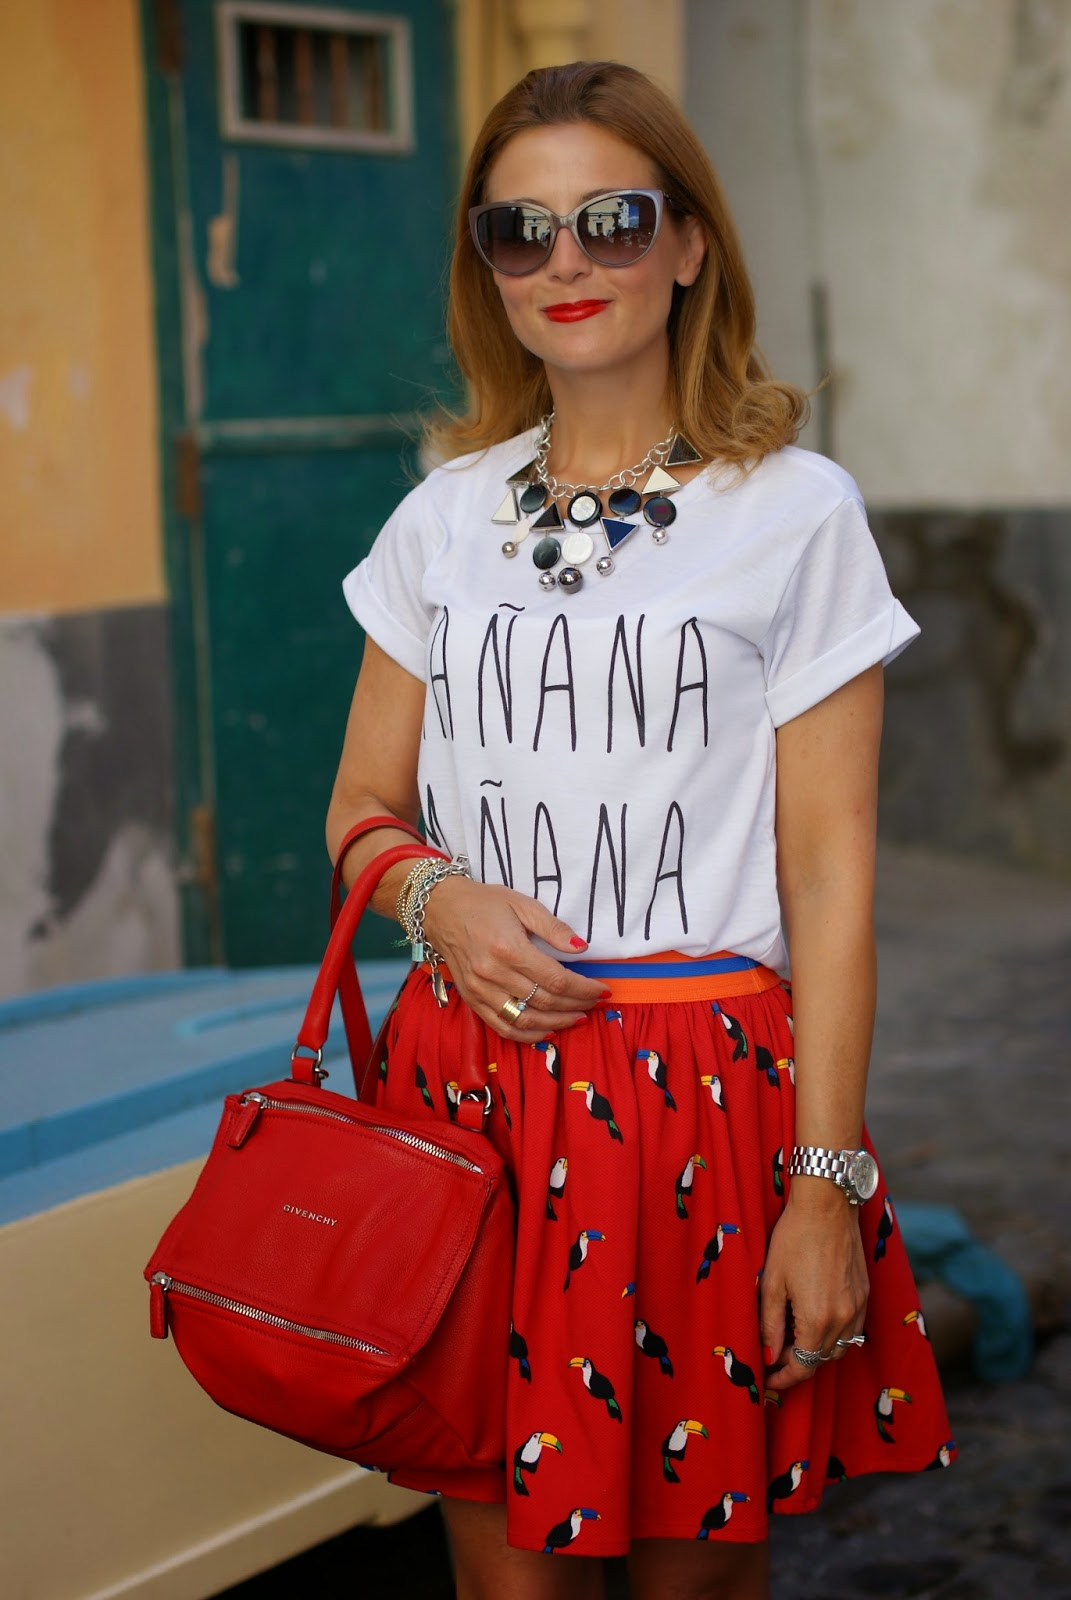 Vitti Ferria Contin necklace, manana t-shirt, parrots print skirt, Givenchy Pandora in red, Fashion and Cookies, fashion blogger